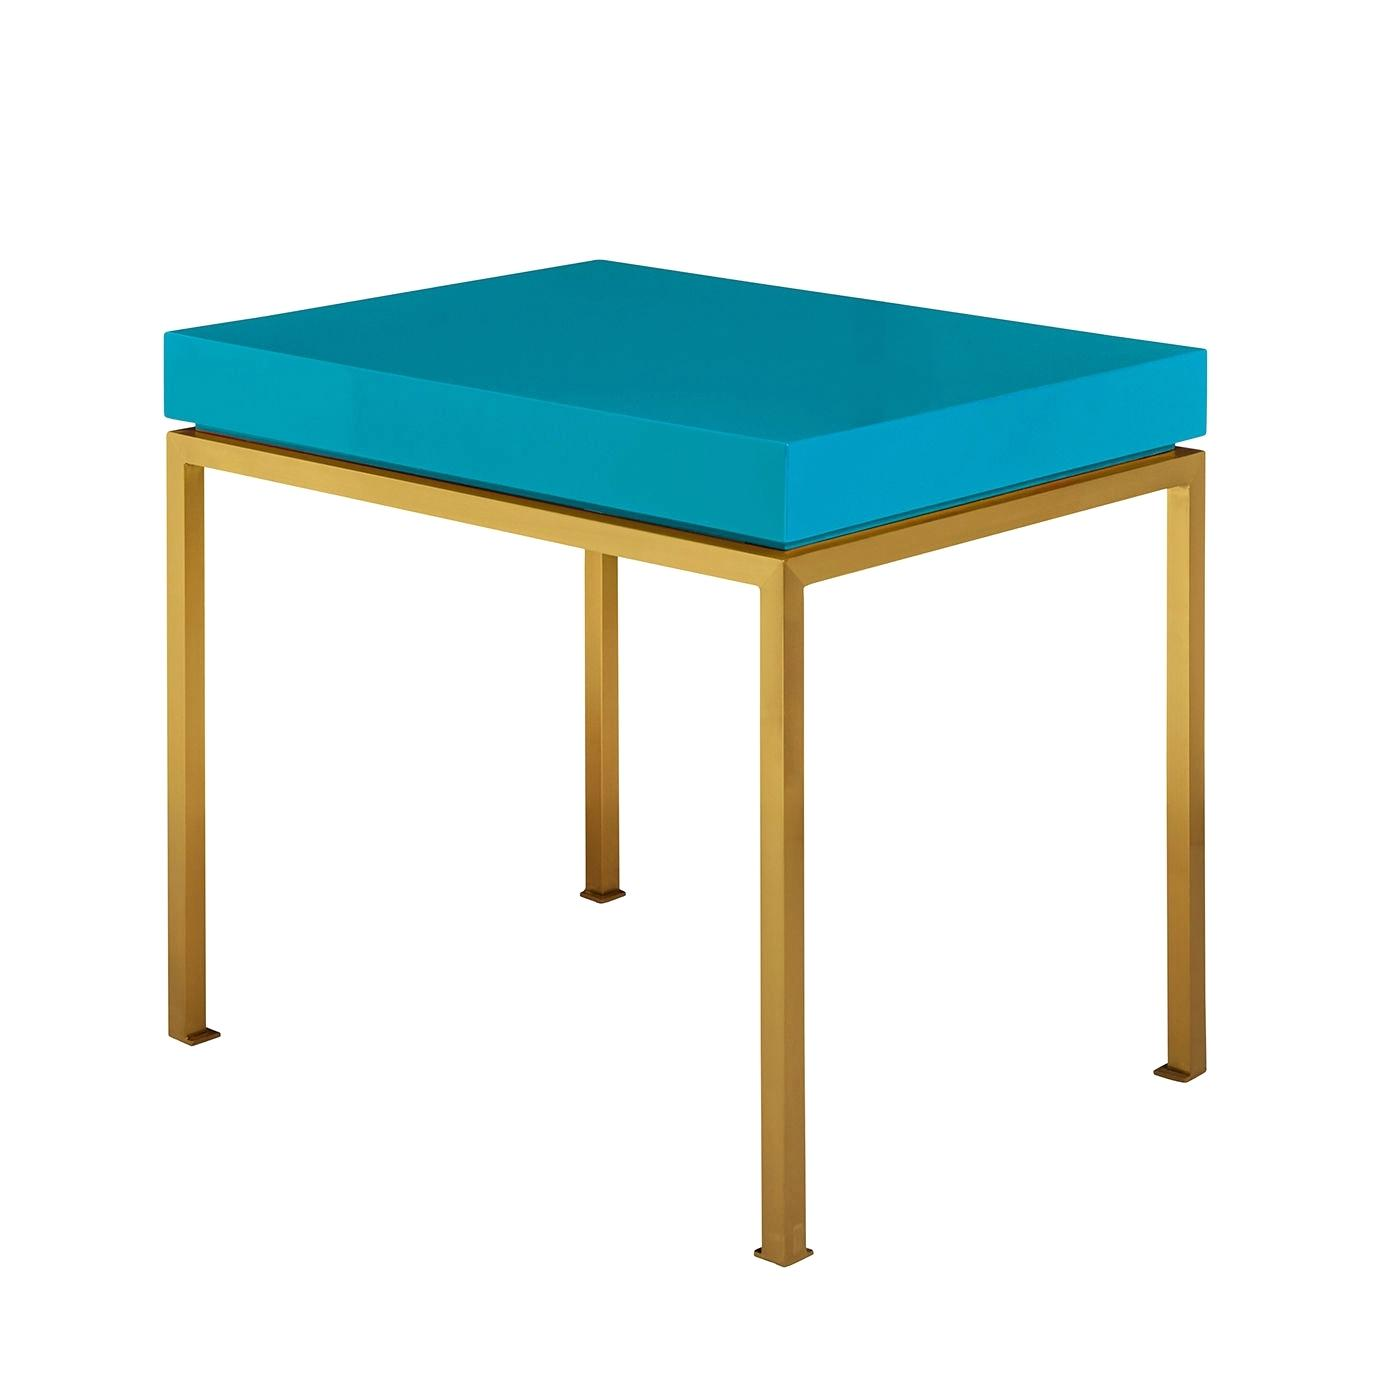 turquoise accent table blue casual distressed naily tall side alt eugene walnut furniture pune mirrored dresser target large outdoor cover victorian lamps west elm mobile